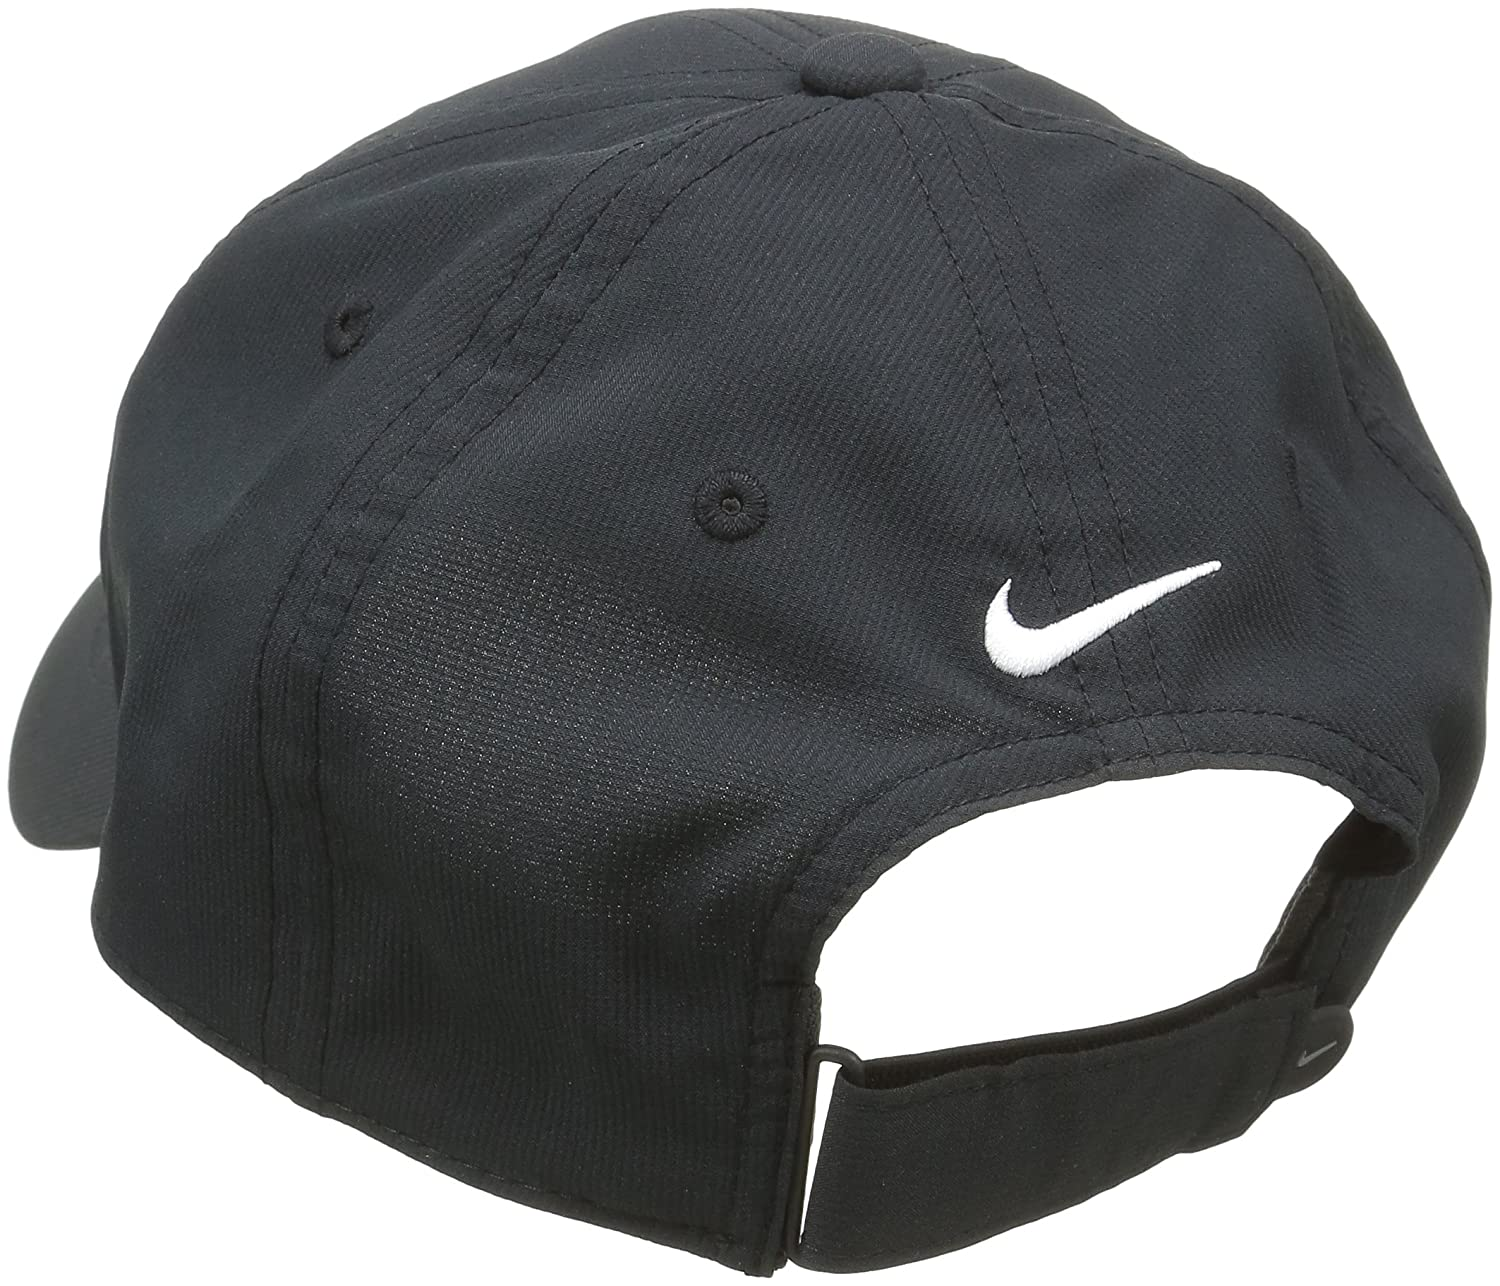 6e454a47 Buy Nike Mens Golf Legacy91 Tech Adjustable Hat Black/White 727042-010  Online at Low Prices in India - Amazon.in